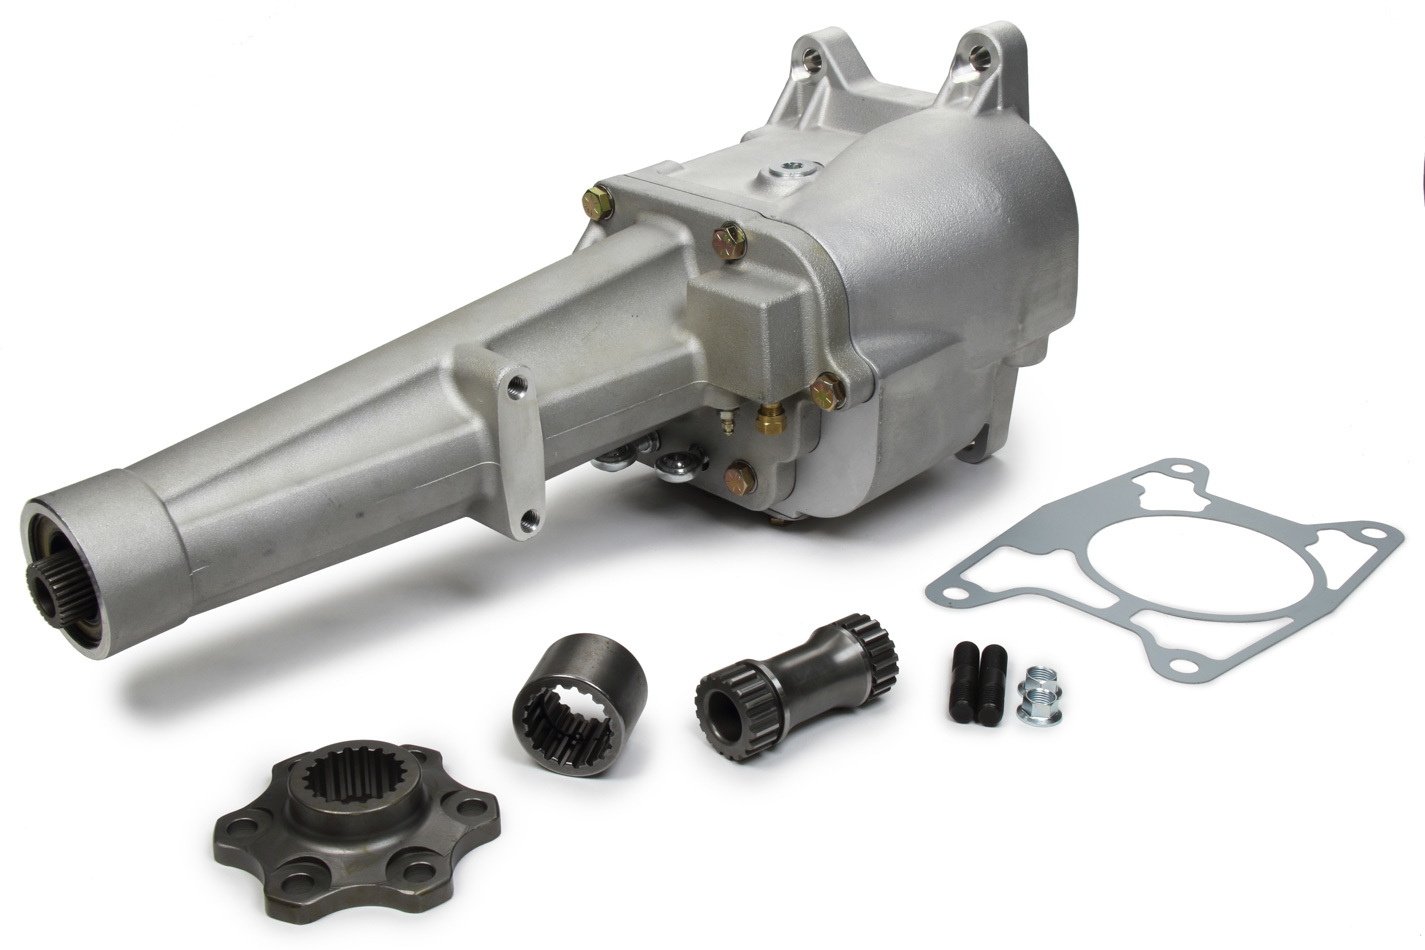 Winters 60100 Transmission, Falcon Late Model, Manual, 2-Forward Speeds, Reverse, Internal Hydraulic Clutch, 18 Spline Input Shaft, Aluminum Case, Kit